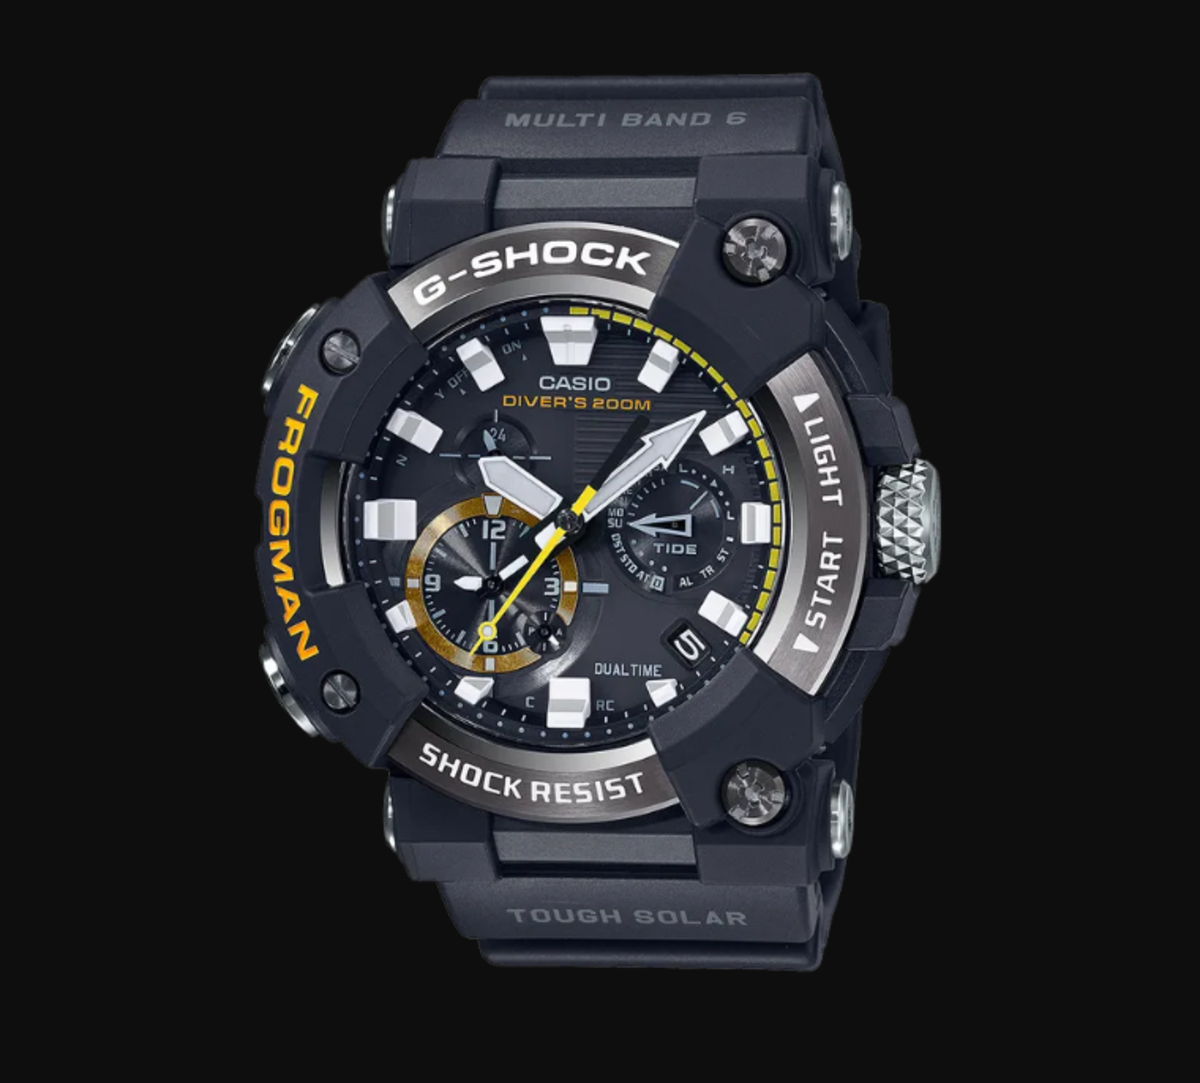 The latest tide watch from Casio